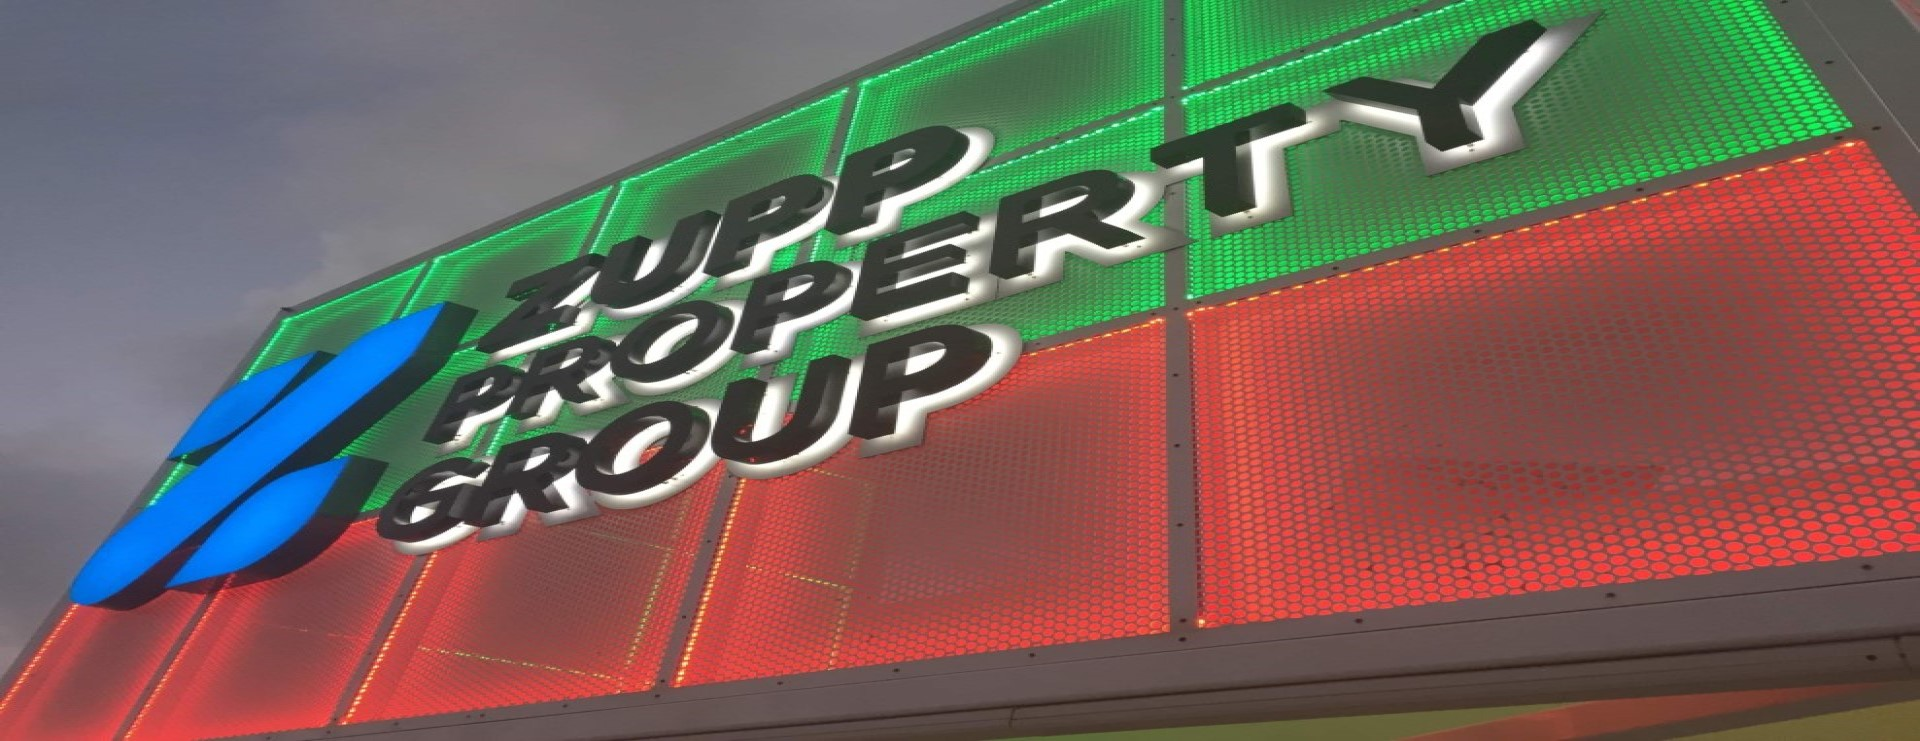 Zupps coloured box signage 1920 x 741 (1)